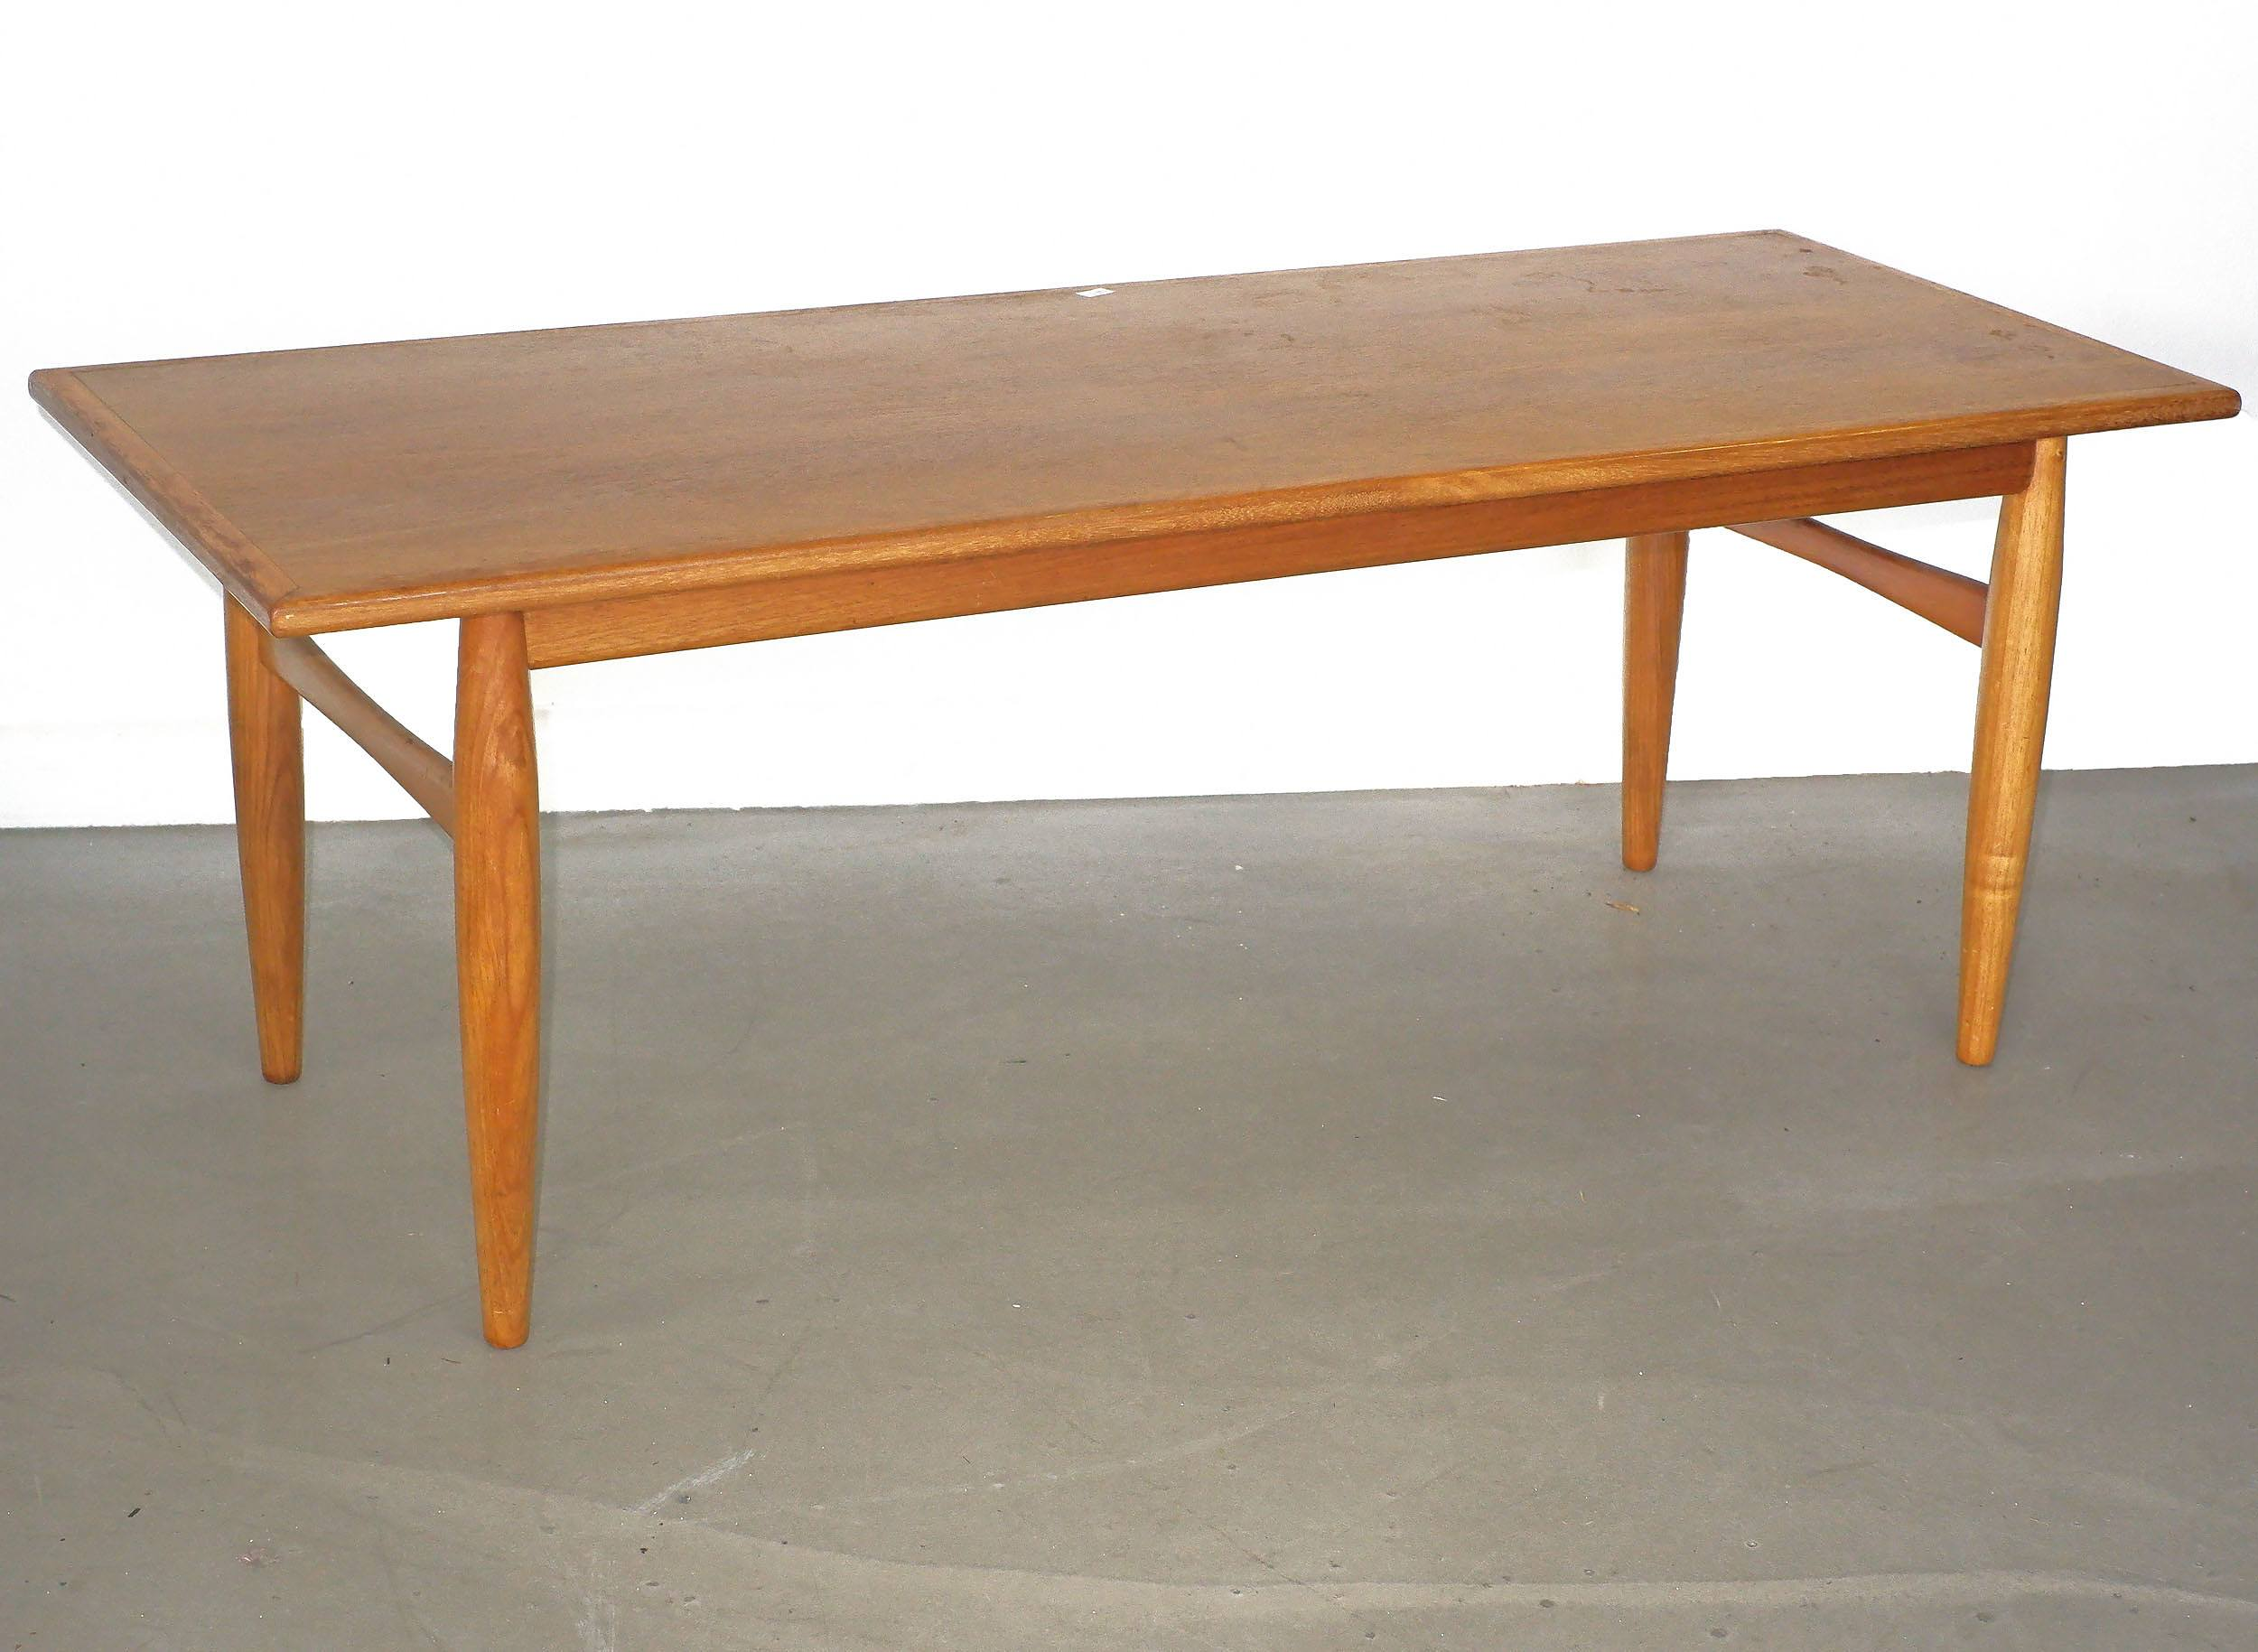 '1960s Tasmanian Blackwood and Teak Veneer Coffee Table with Cigar Legs'